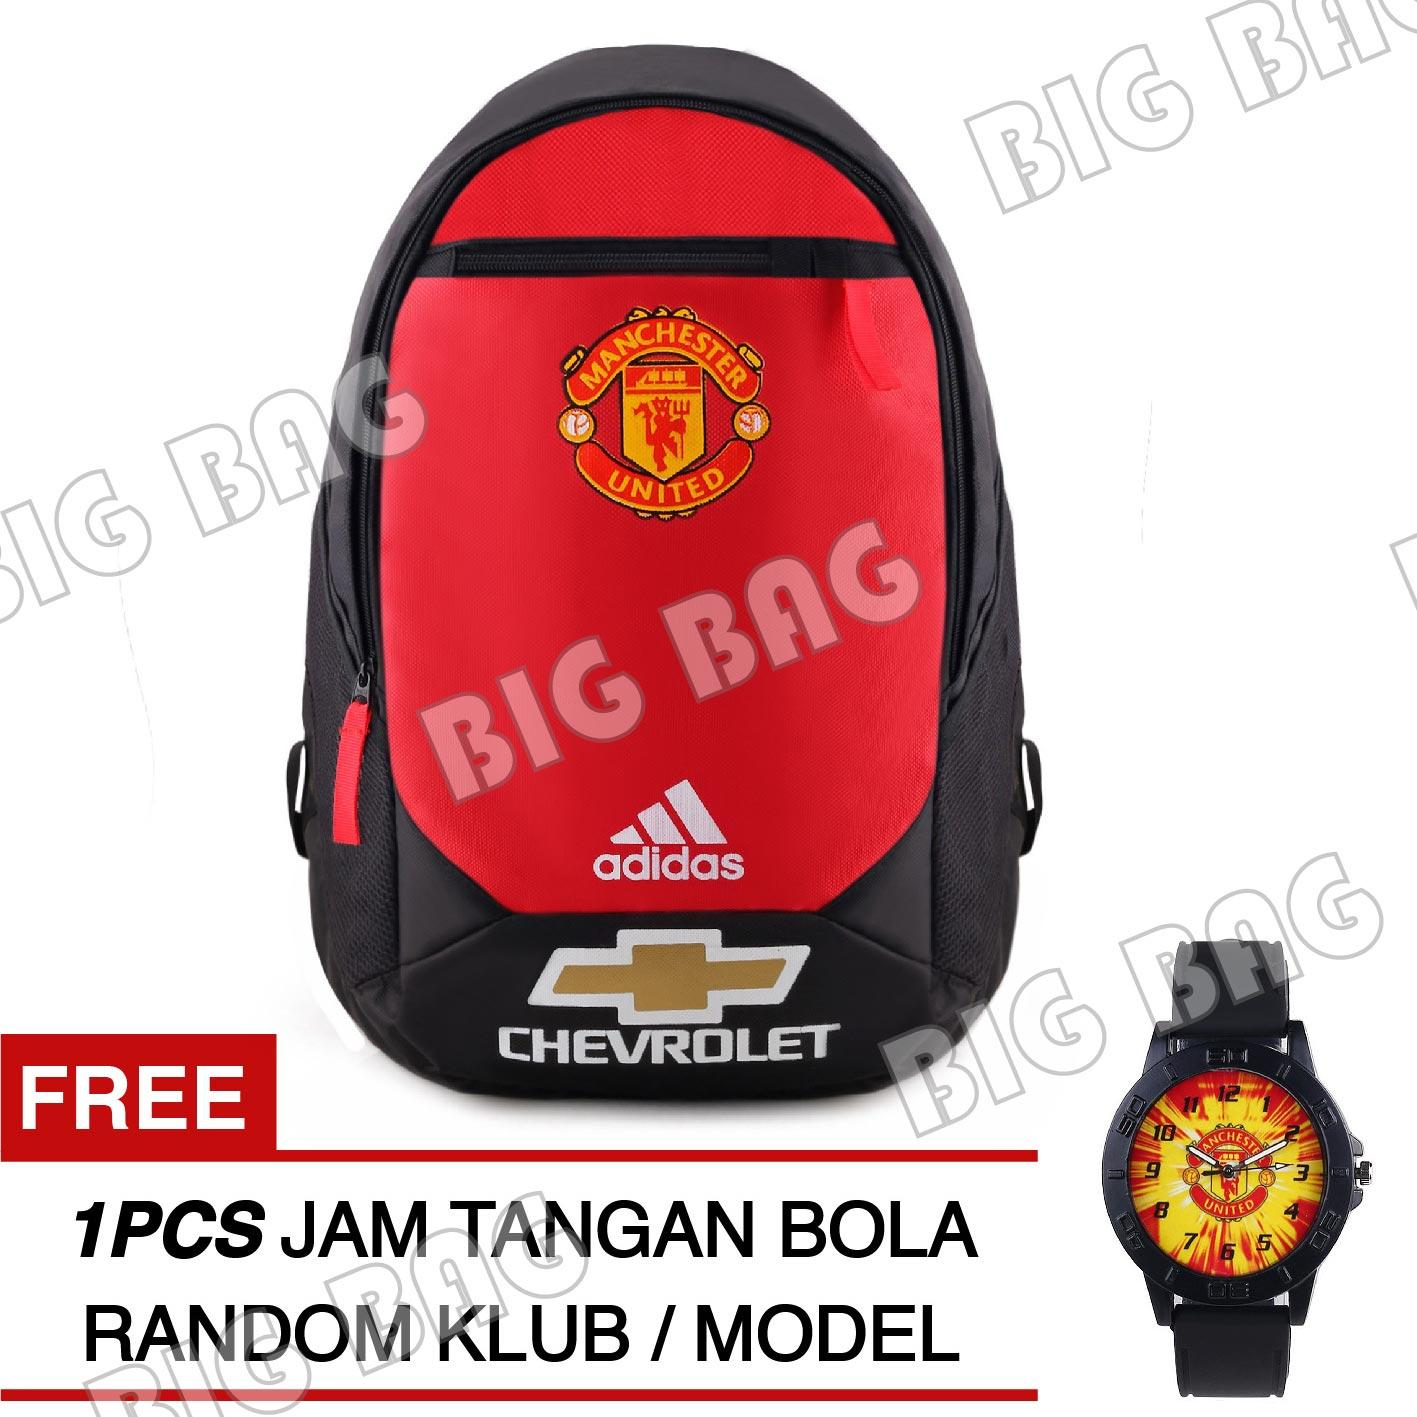 Tas Ransel Adidas Bola Pria M.U Chevrolet Laptop Backpack Men Soccer Editions - Red + Raincover + FREE Jam Tangan Pria Random Color / Model